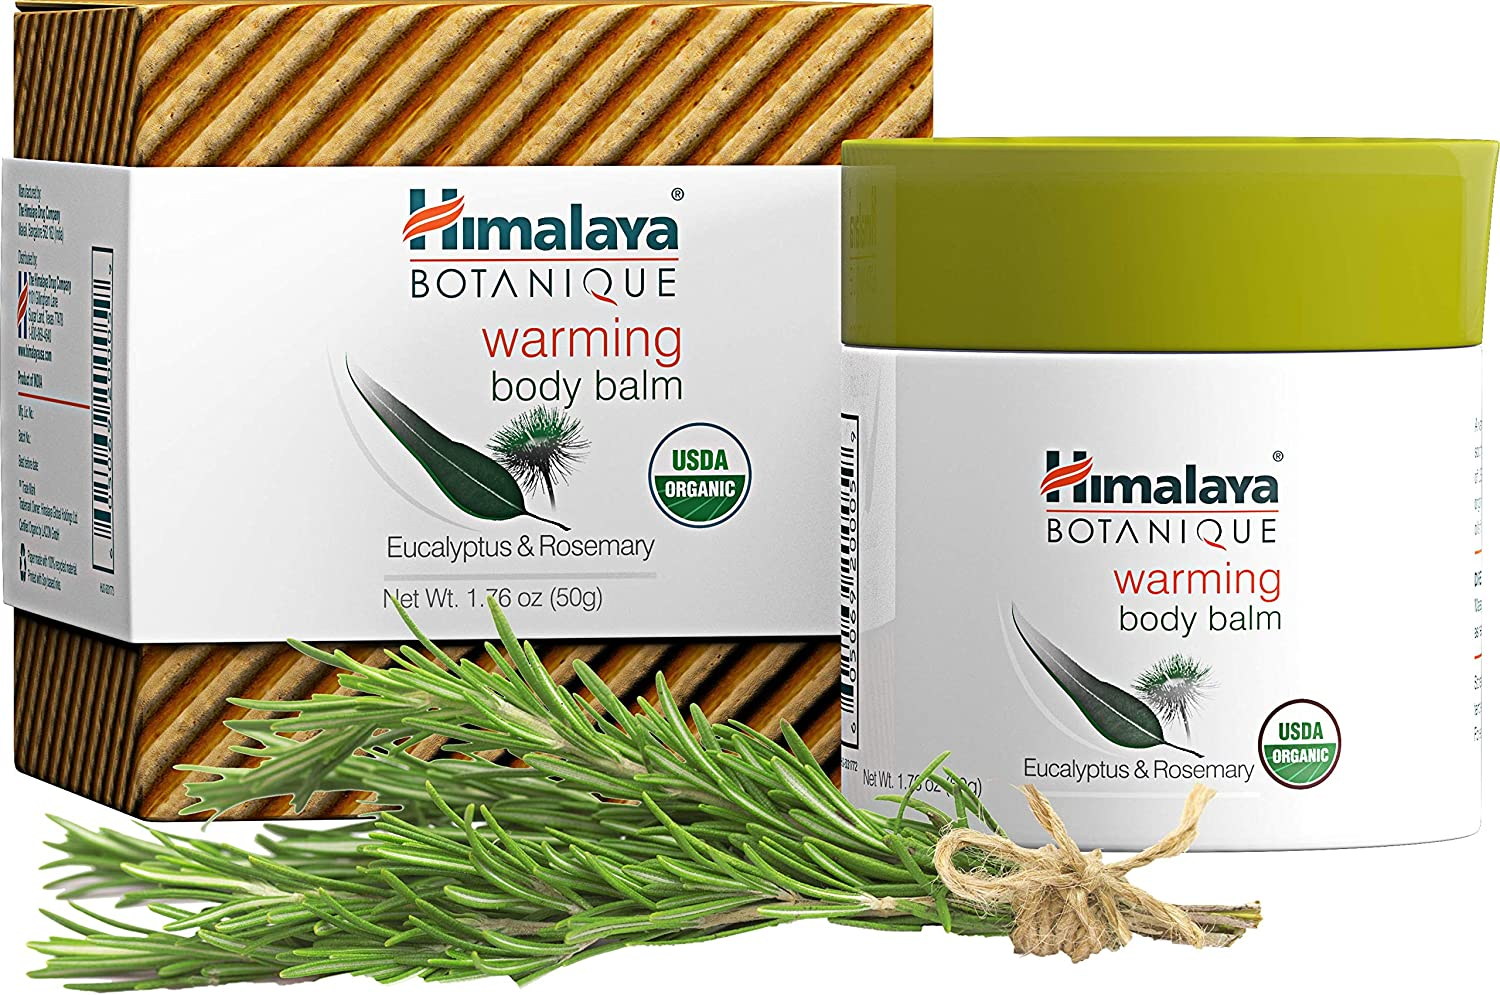 Himalaya Organic Warming Body Balm with Eucalyptus, Rosemary and Coconut Oil for Muscle and Joint Pain Relief 1.76 oz (50 g)